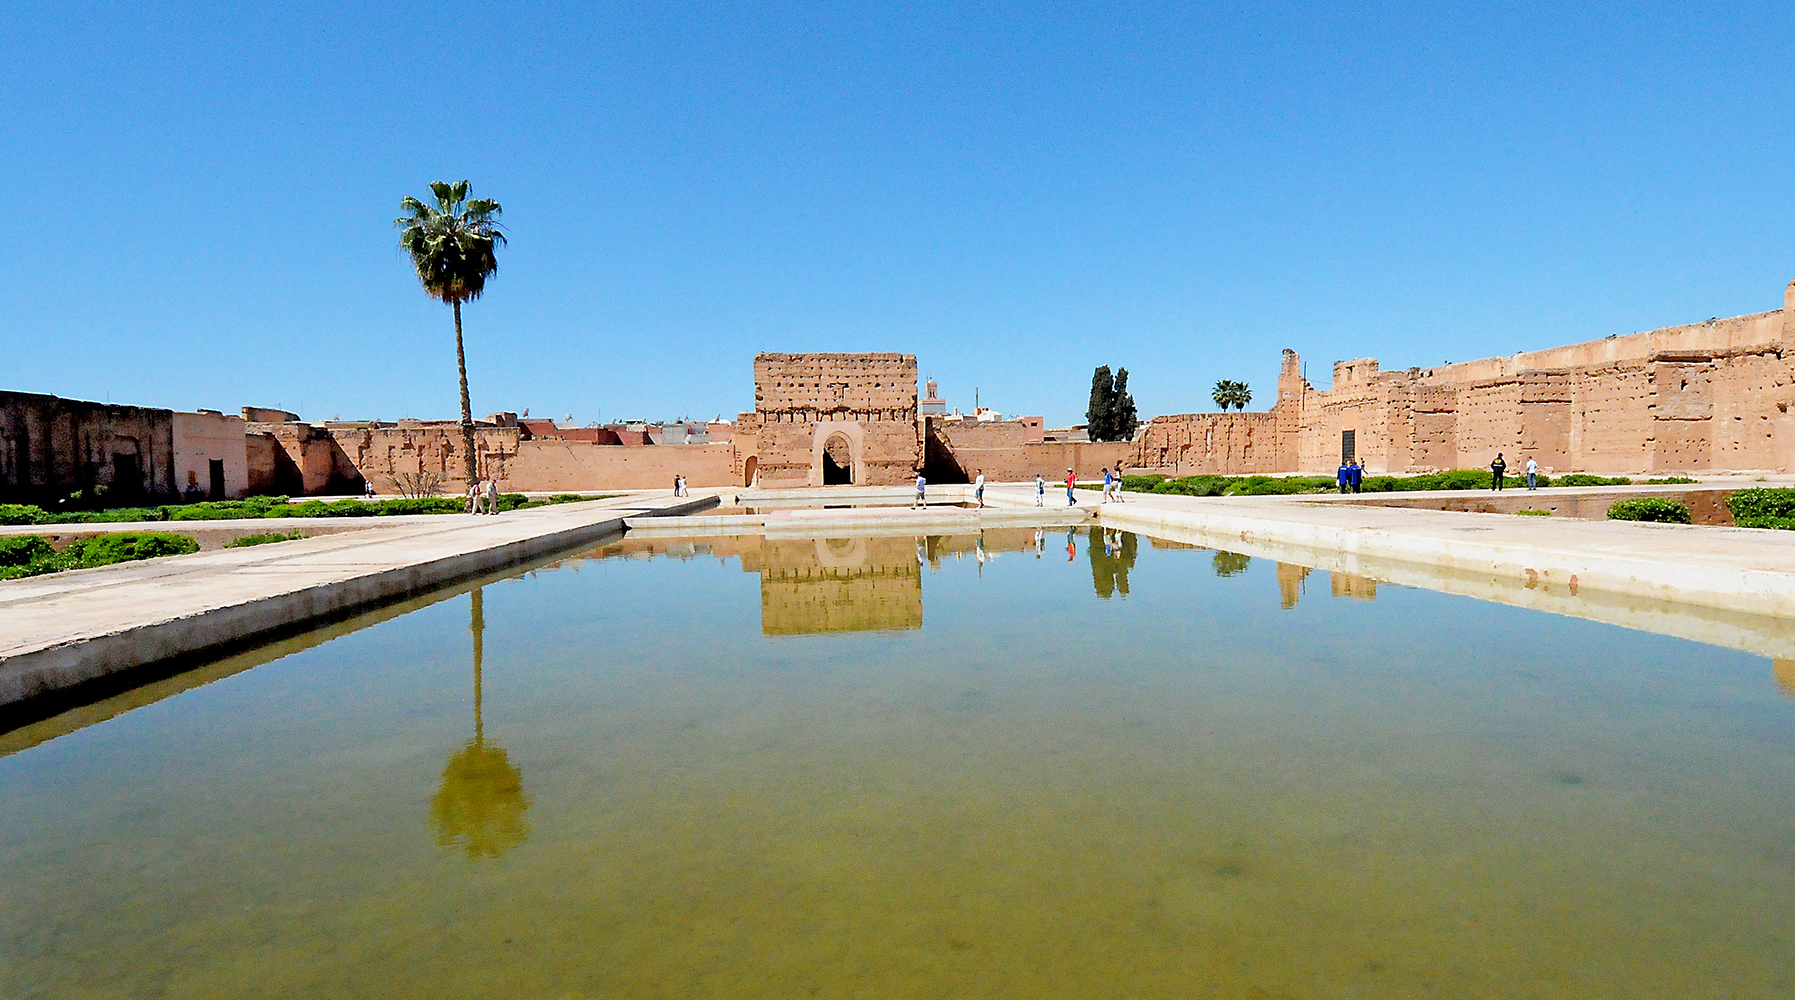 Castle building in Morocco reflecting in pool of water with palm tree on left Architectural Photography